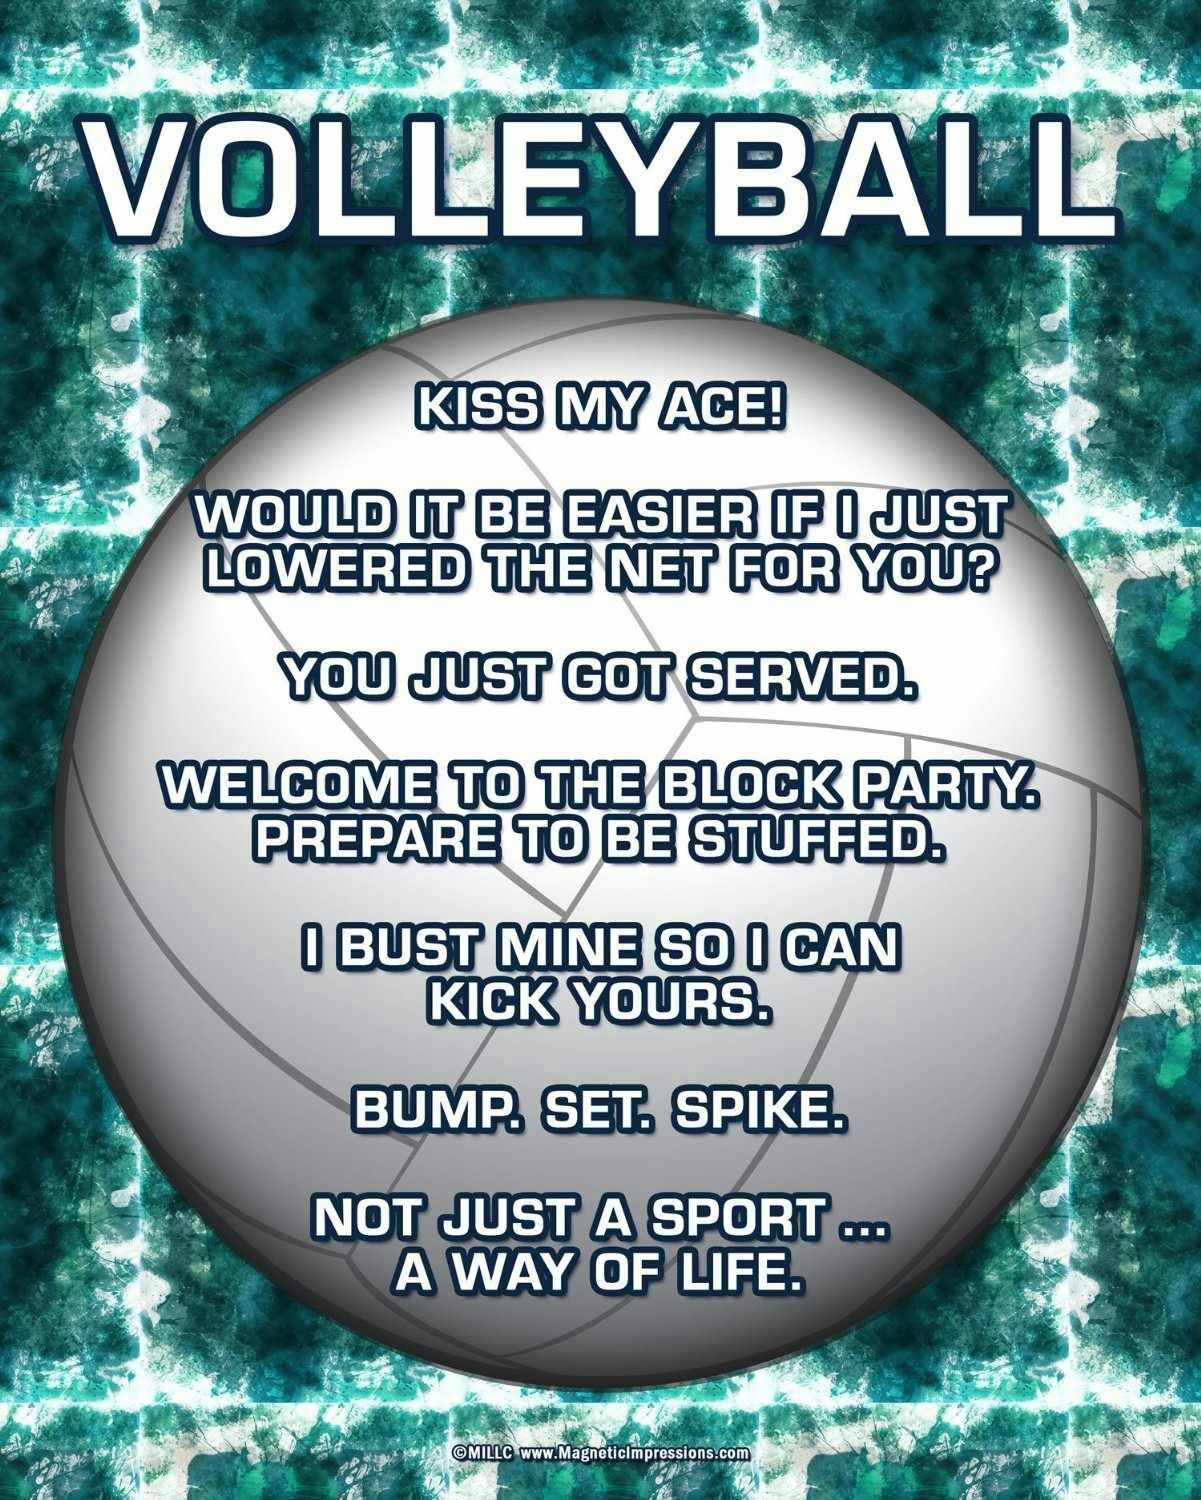 Pin By Anette Garcia On Volleyball 2 Volleyball Workouts Volleyball Humor Volleyball Inspiration